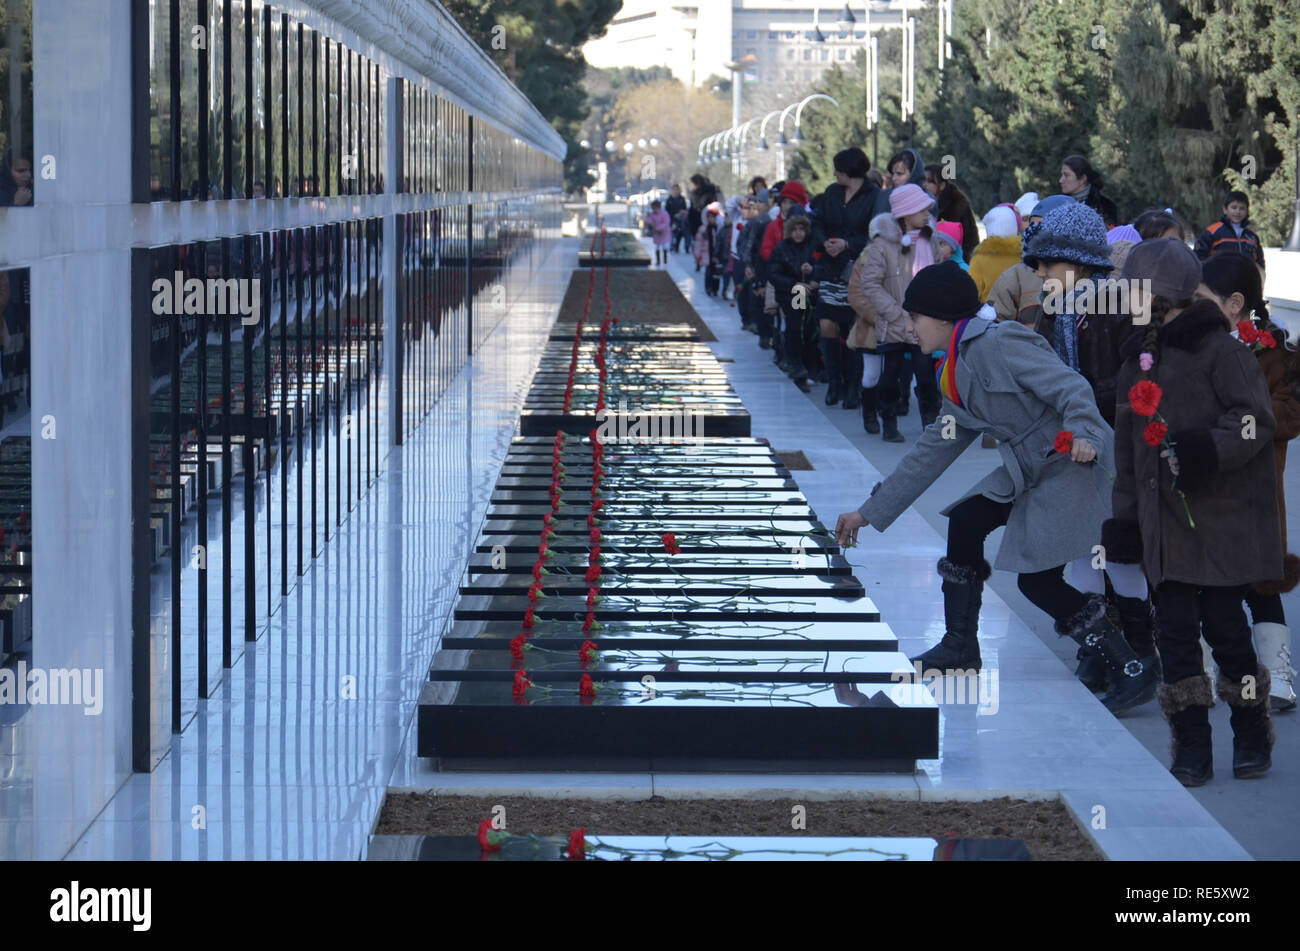 Azerbaijan, Baku, January 20, 2011. People visiting Alley of Martyrs on anniversary of 20th January tragedy when Soviet Army attacked Baku in 1990, ki Stock Photo